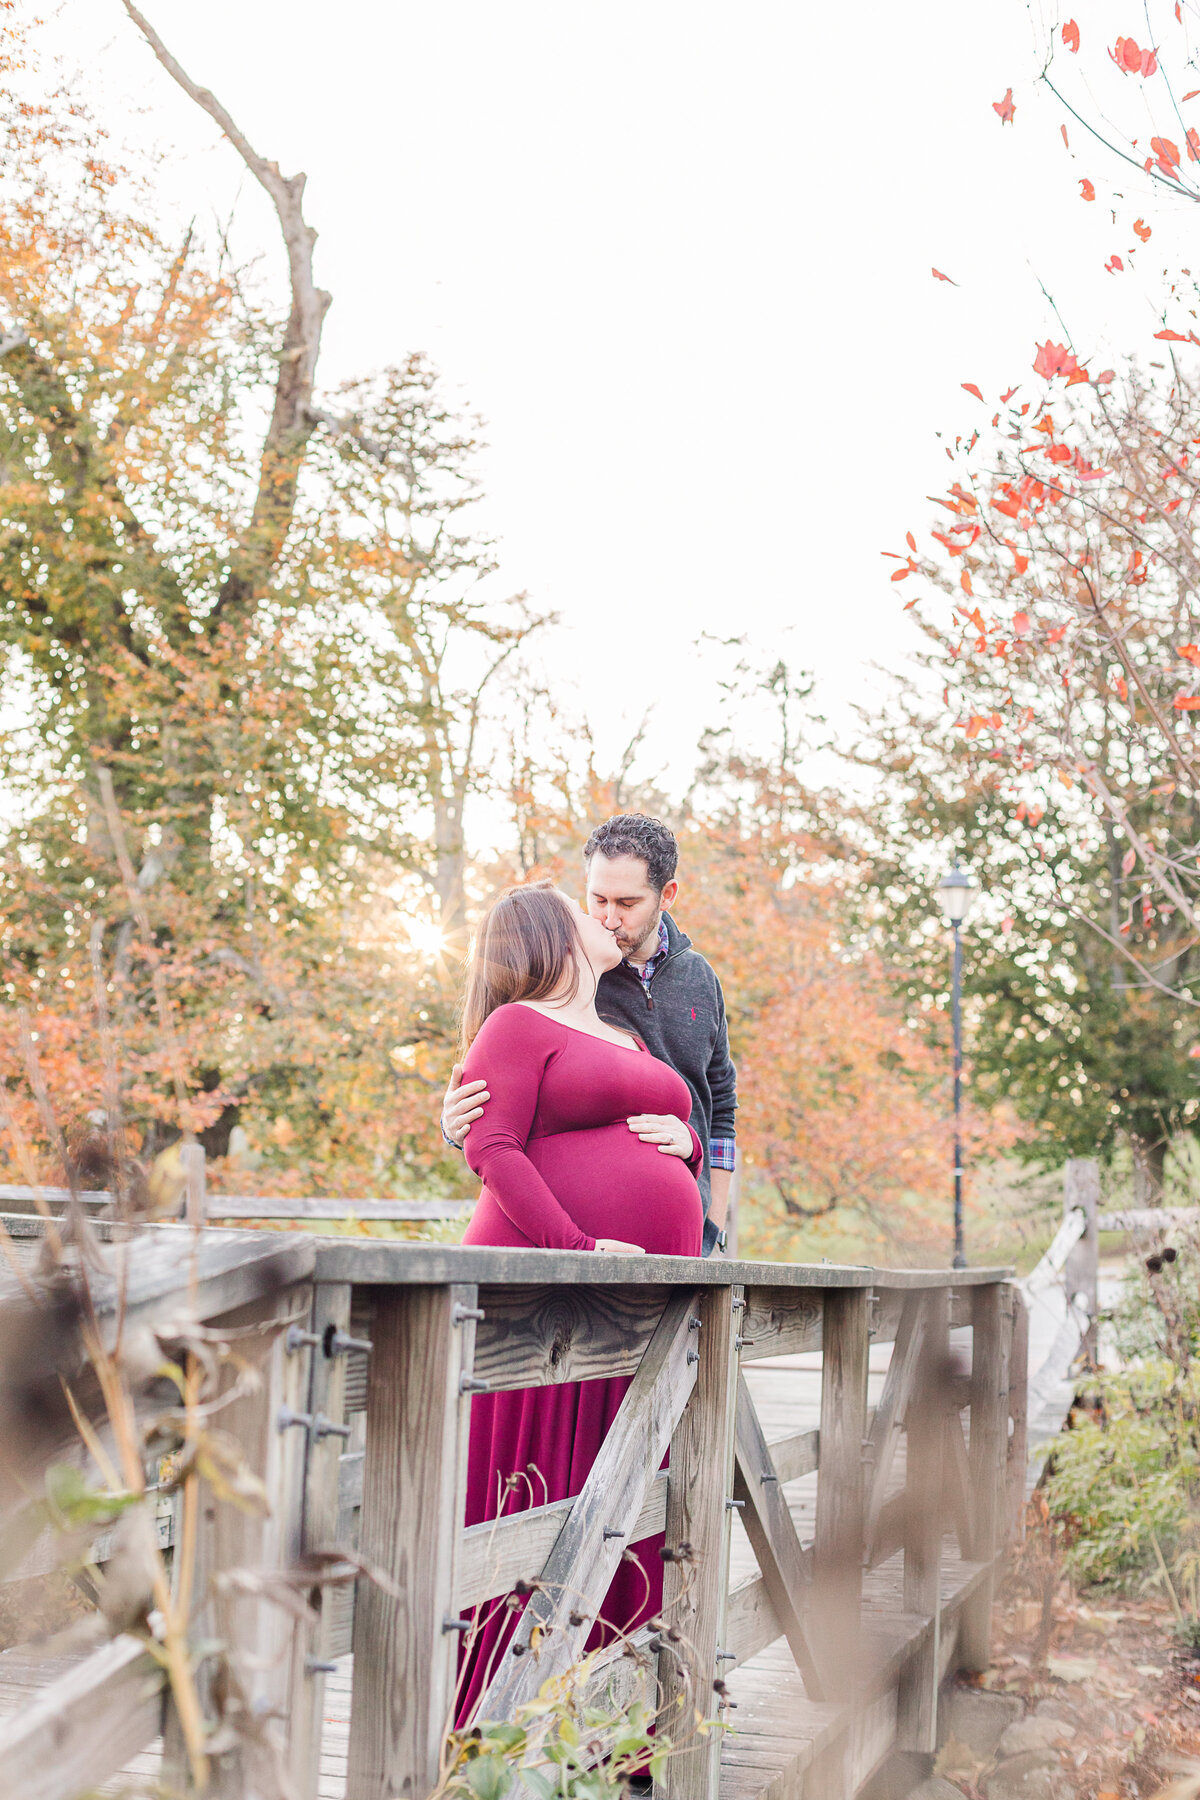 Maternity photo kiss on bridge Hunnewell park Wellesley MA